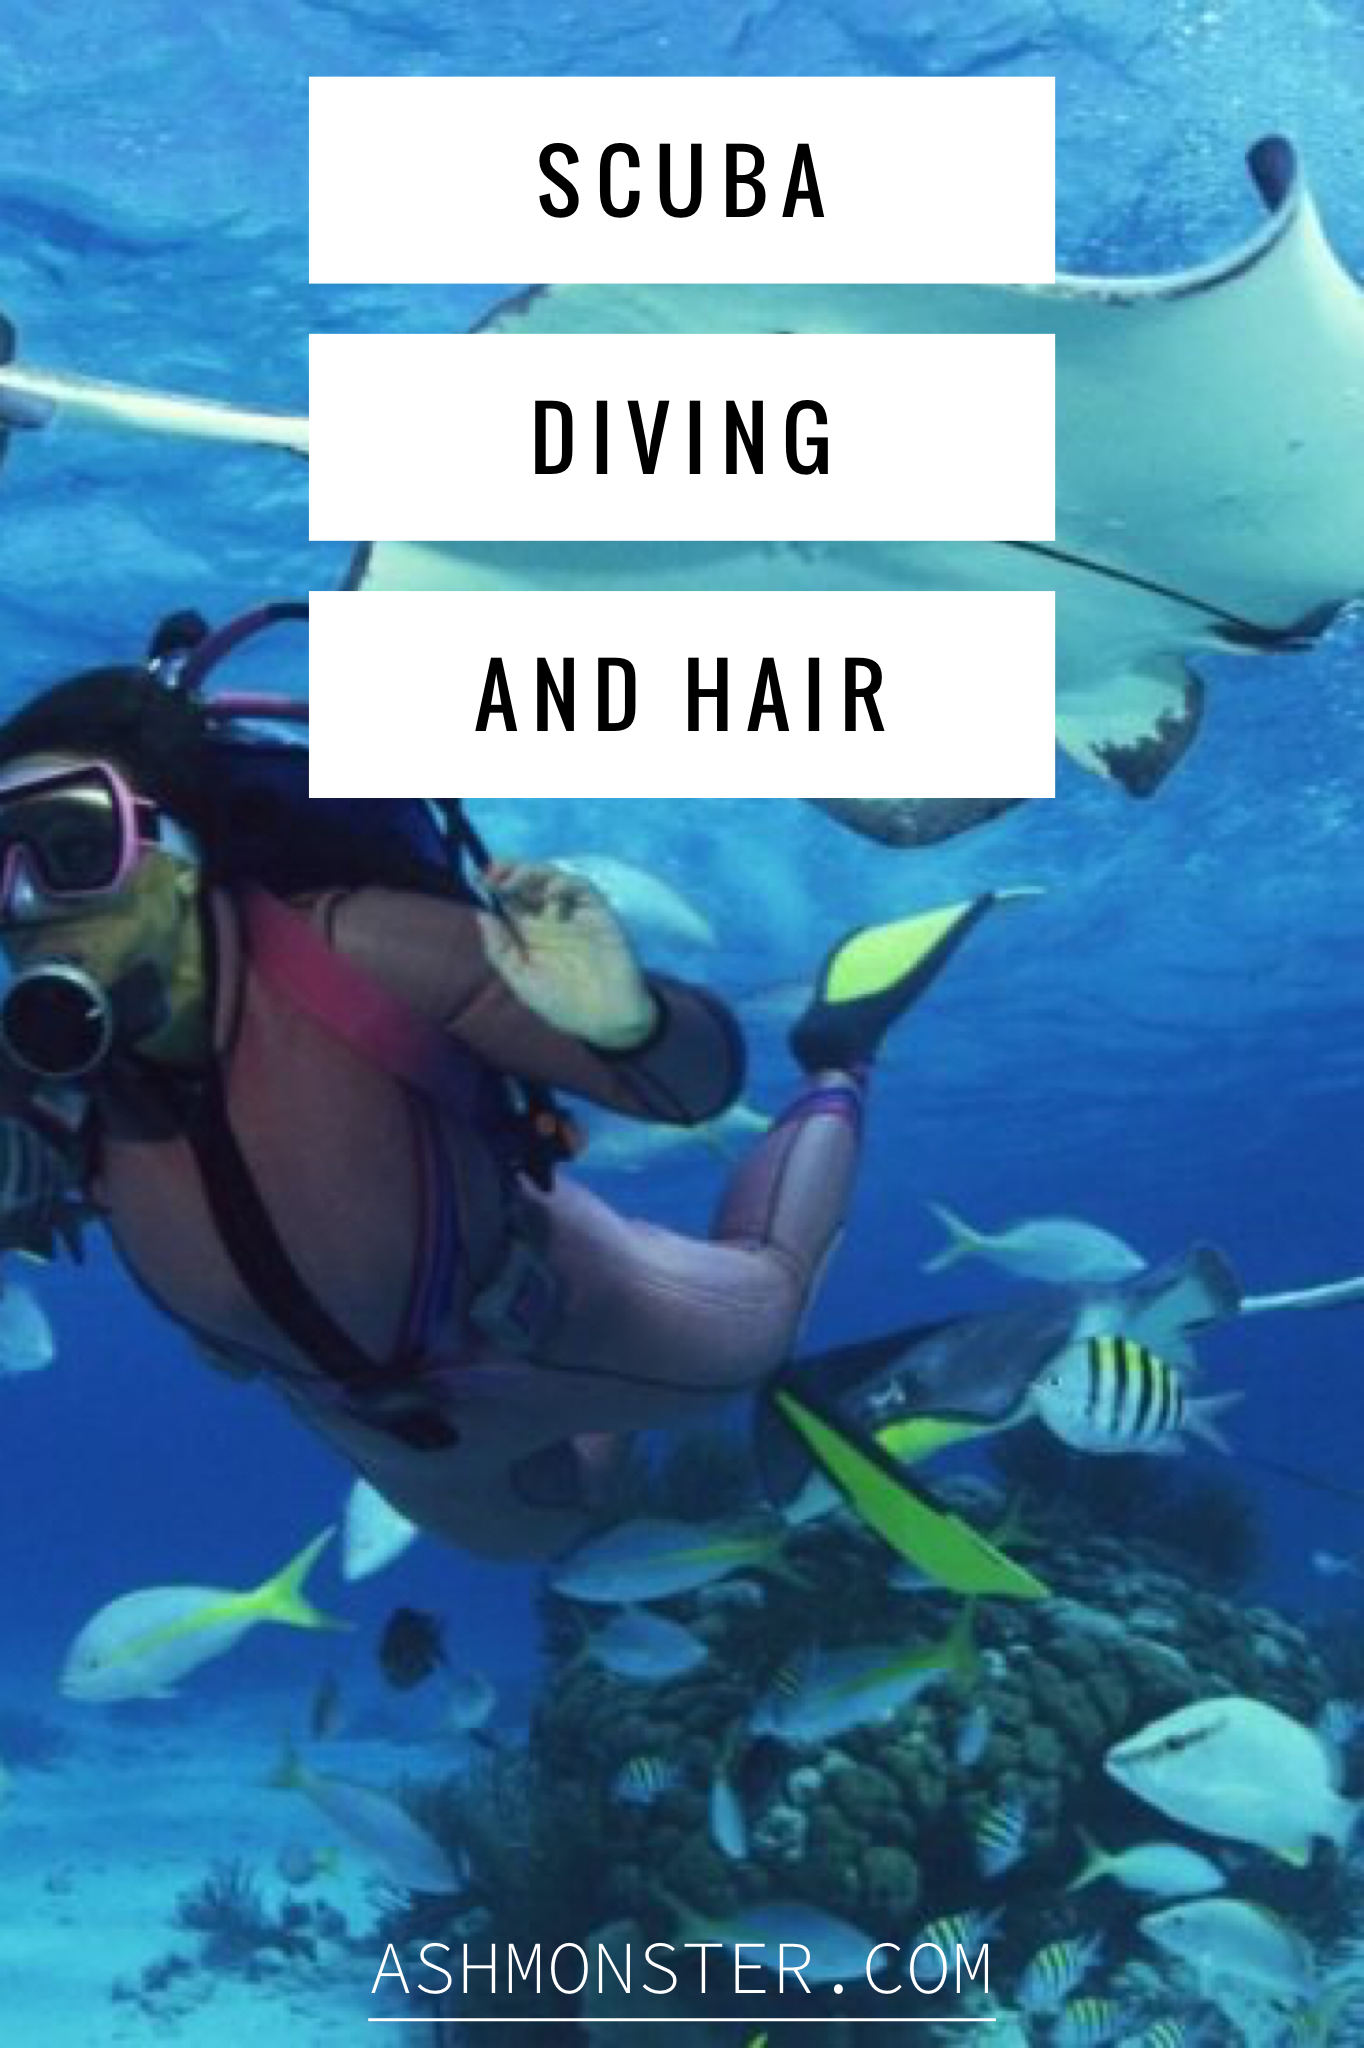 scuba diving and hair by ash monster